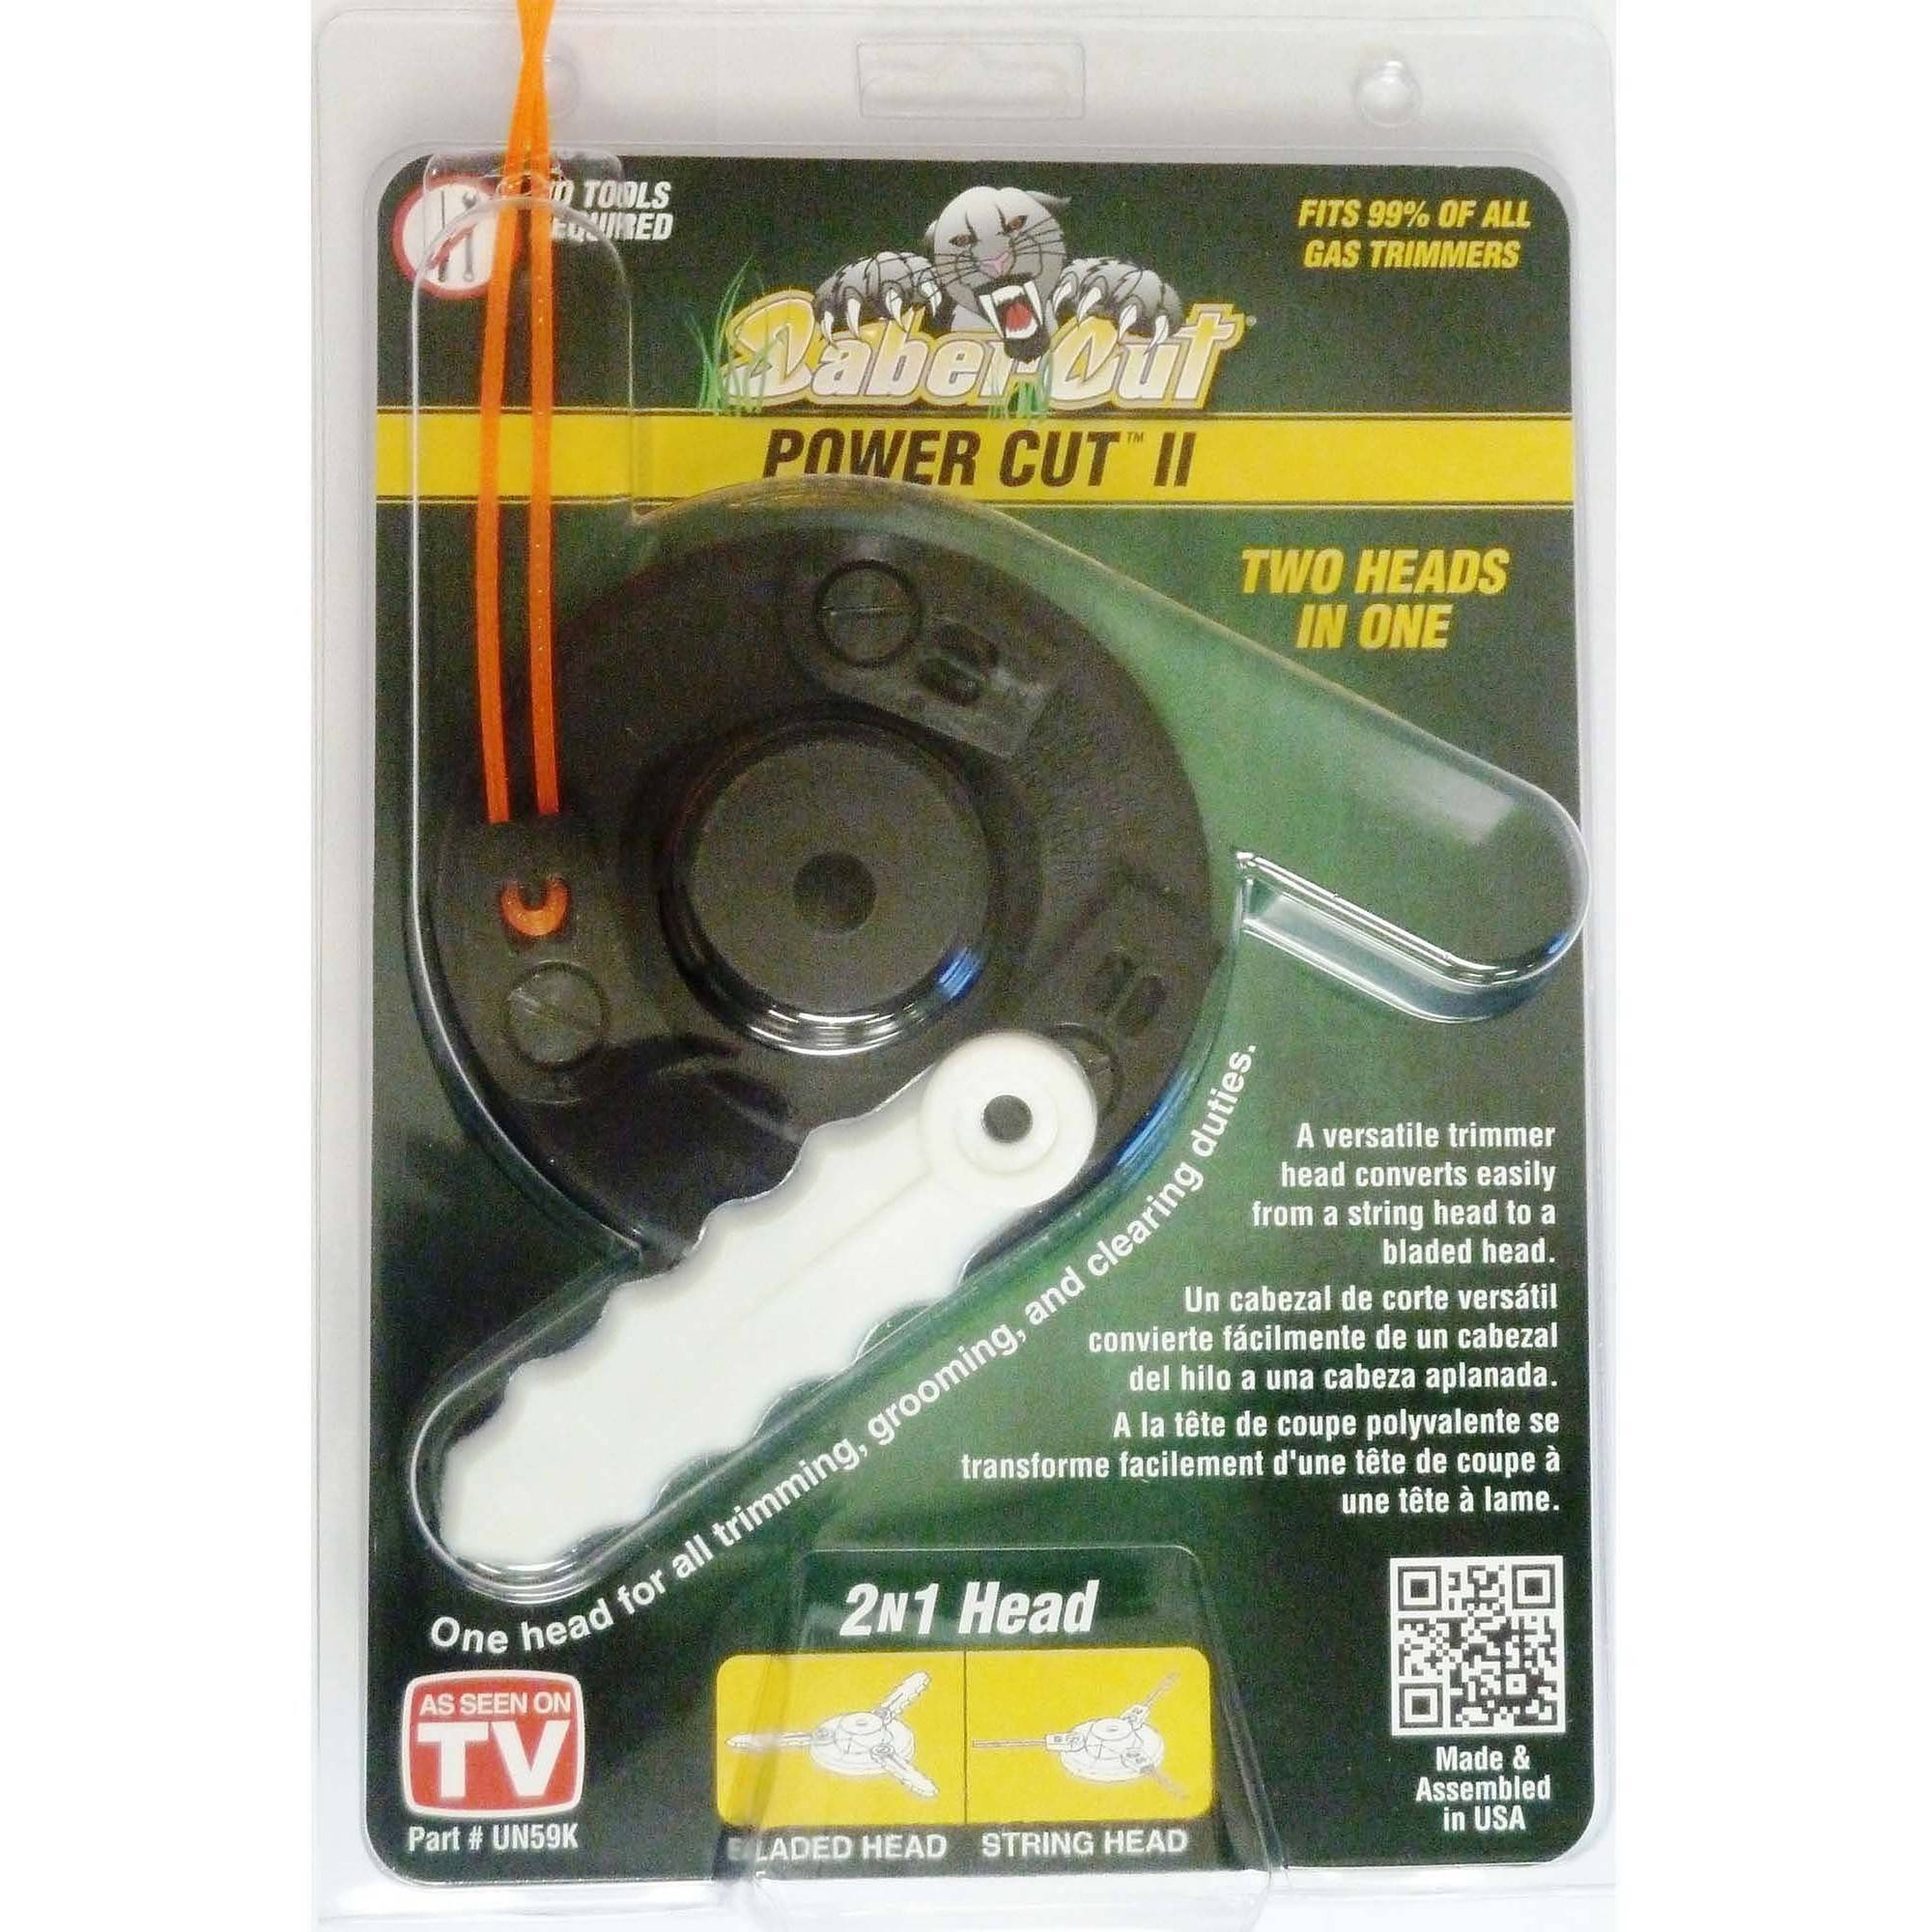 SaberCut UN-59K POWER CUT II 2-in-1 String Trimmer Head, Black